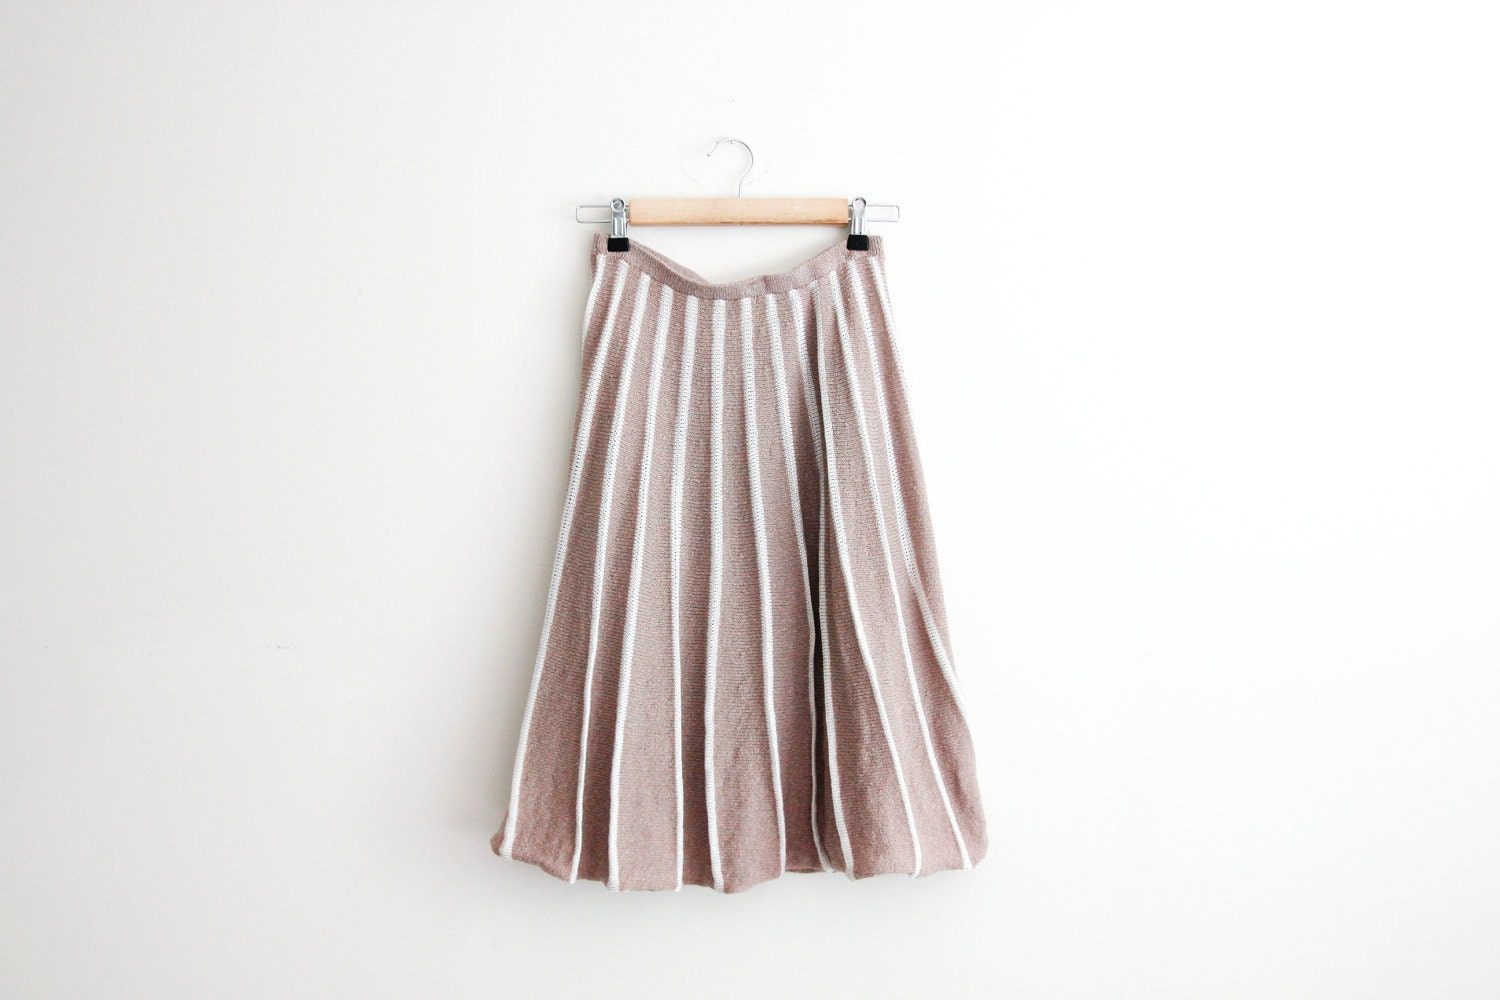 Coffee and cream sweater midi skirt // vintage 70s knit soft taupe skirt